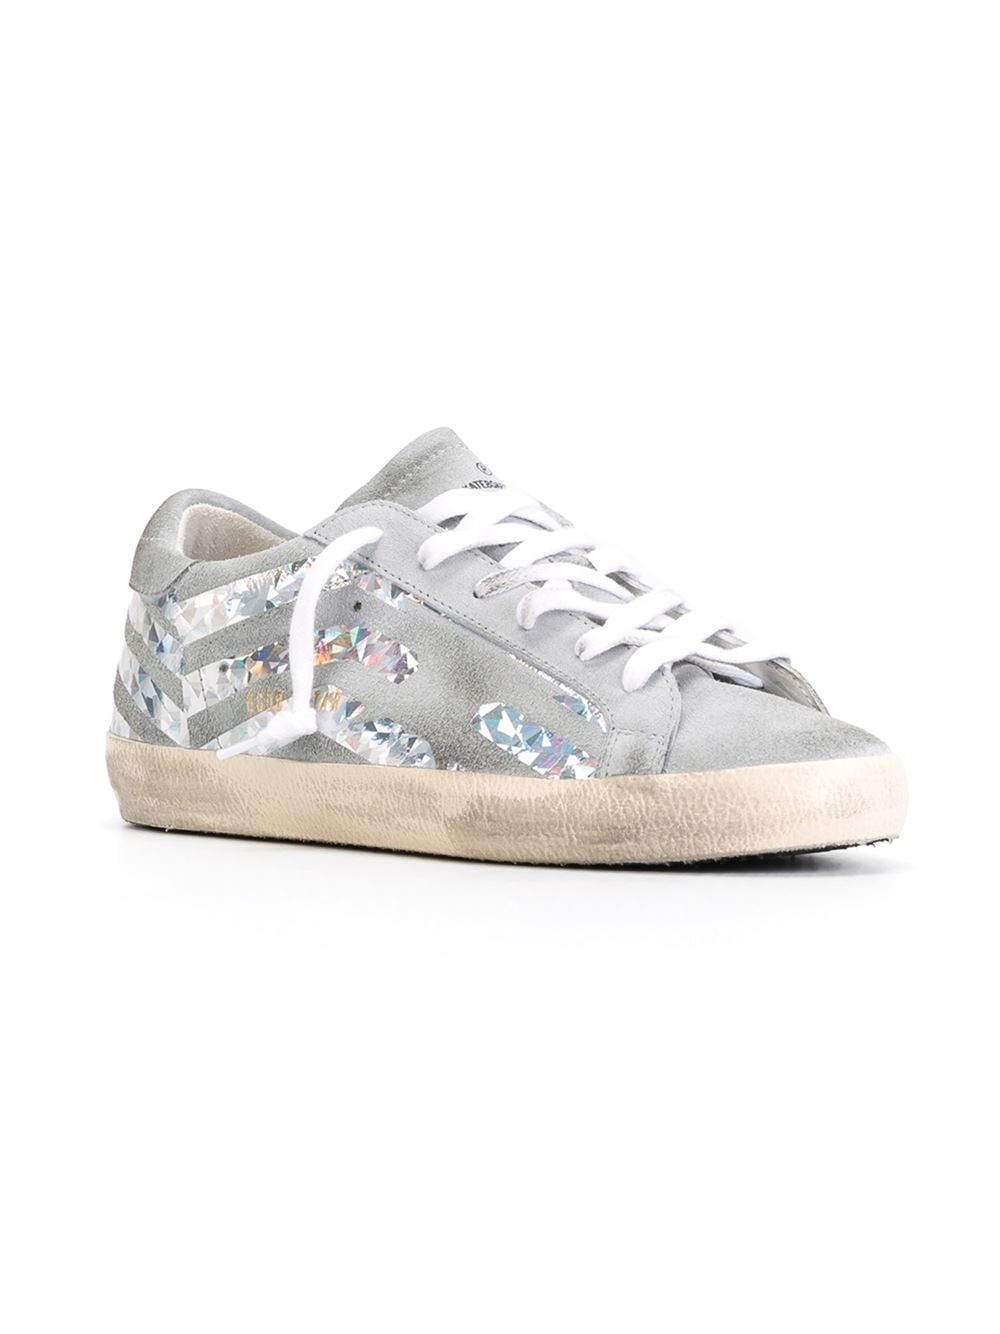 golden goose deluxe brand 39 super star 39 sneakers in gray grey lyst. Black Bedroom Furniture Sets. Home Design Ideas